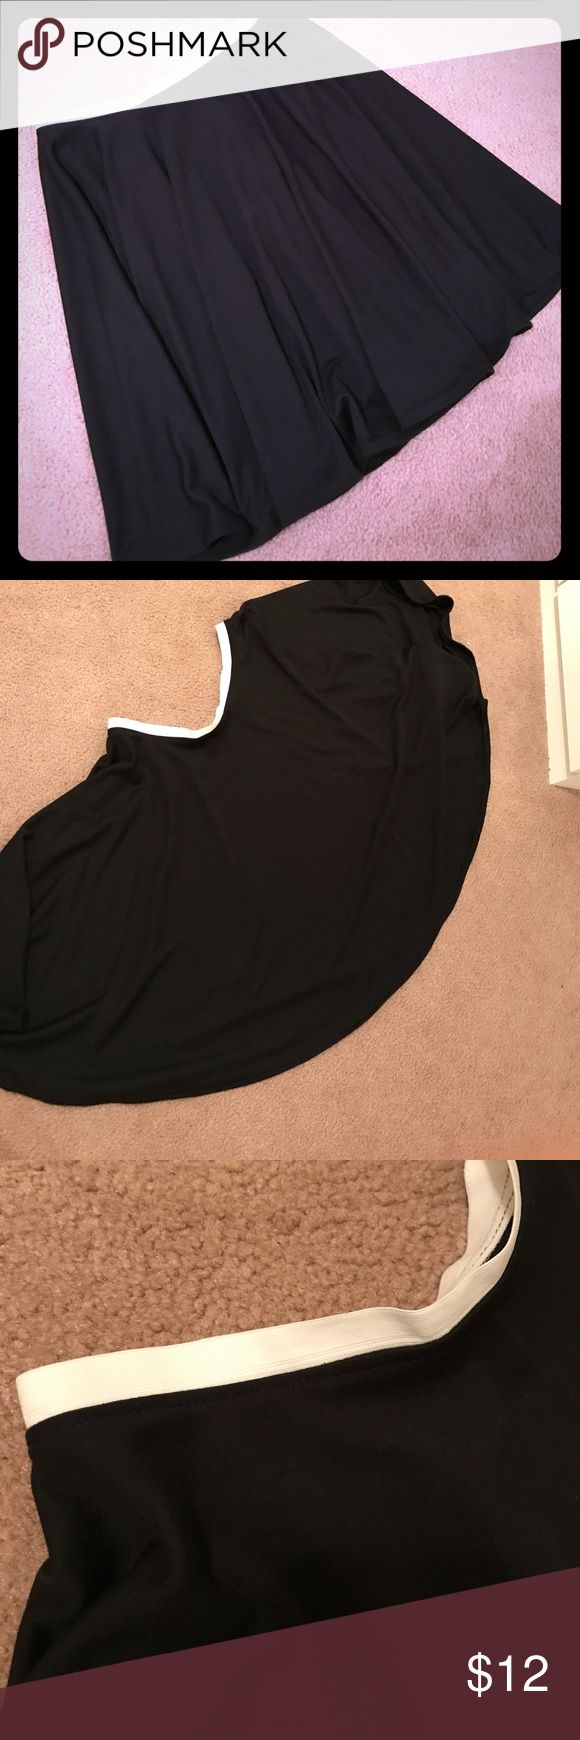 Final sale-Donating Oct28thth- Handmade skirt New. Black midi circle skirt. Feel free to ask question. handmade Skirts Midi